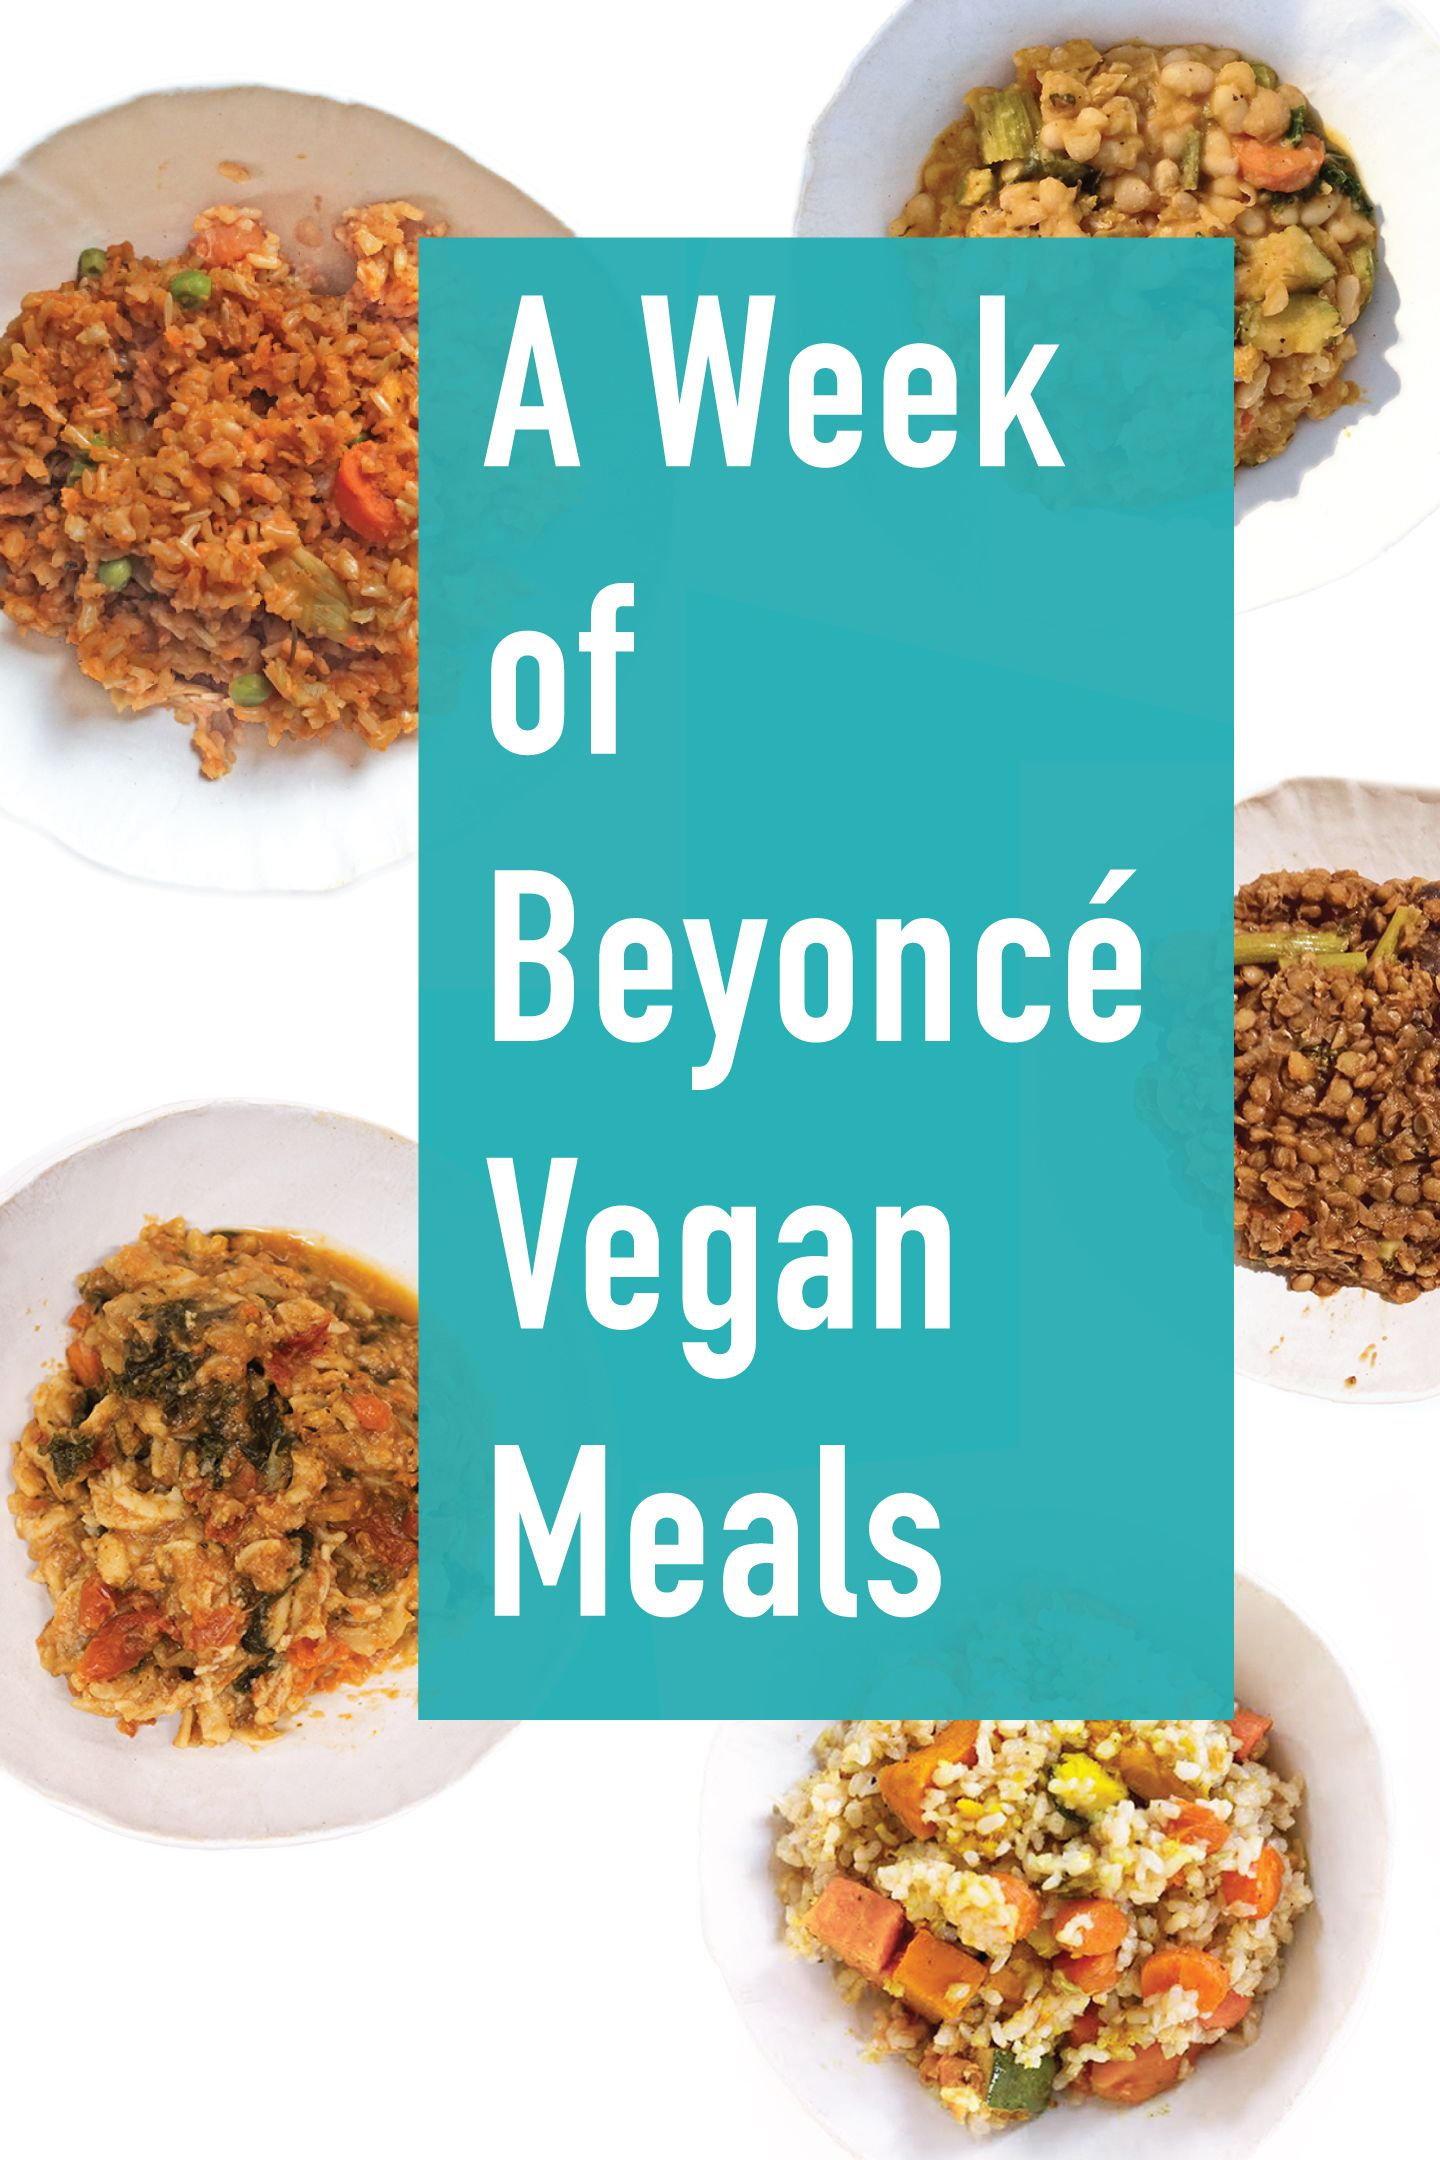 I Ate Beyonce S Vegan Meal Delivery Service For A Week Vegan Meal Delivery Vegan Recipes Vegan Meal Plans